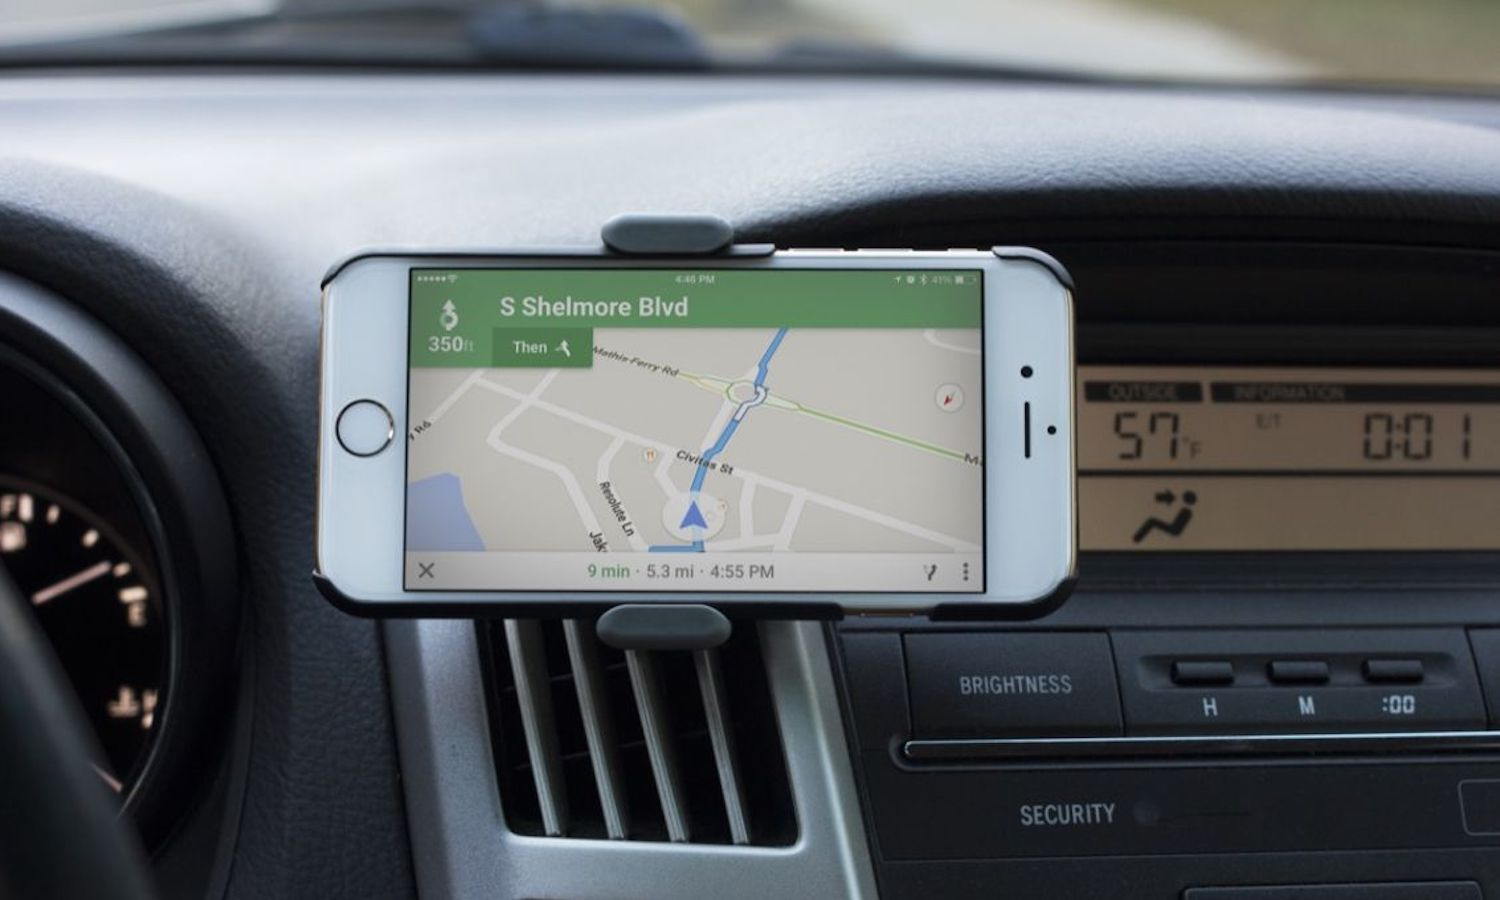 Responsible ModMac: problem with sound and GPS in the iPhone